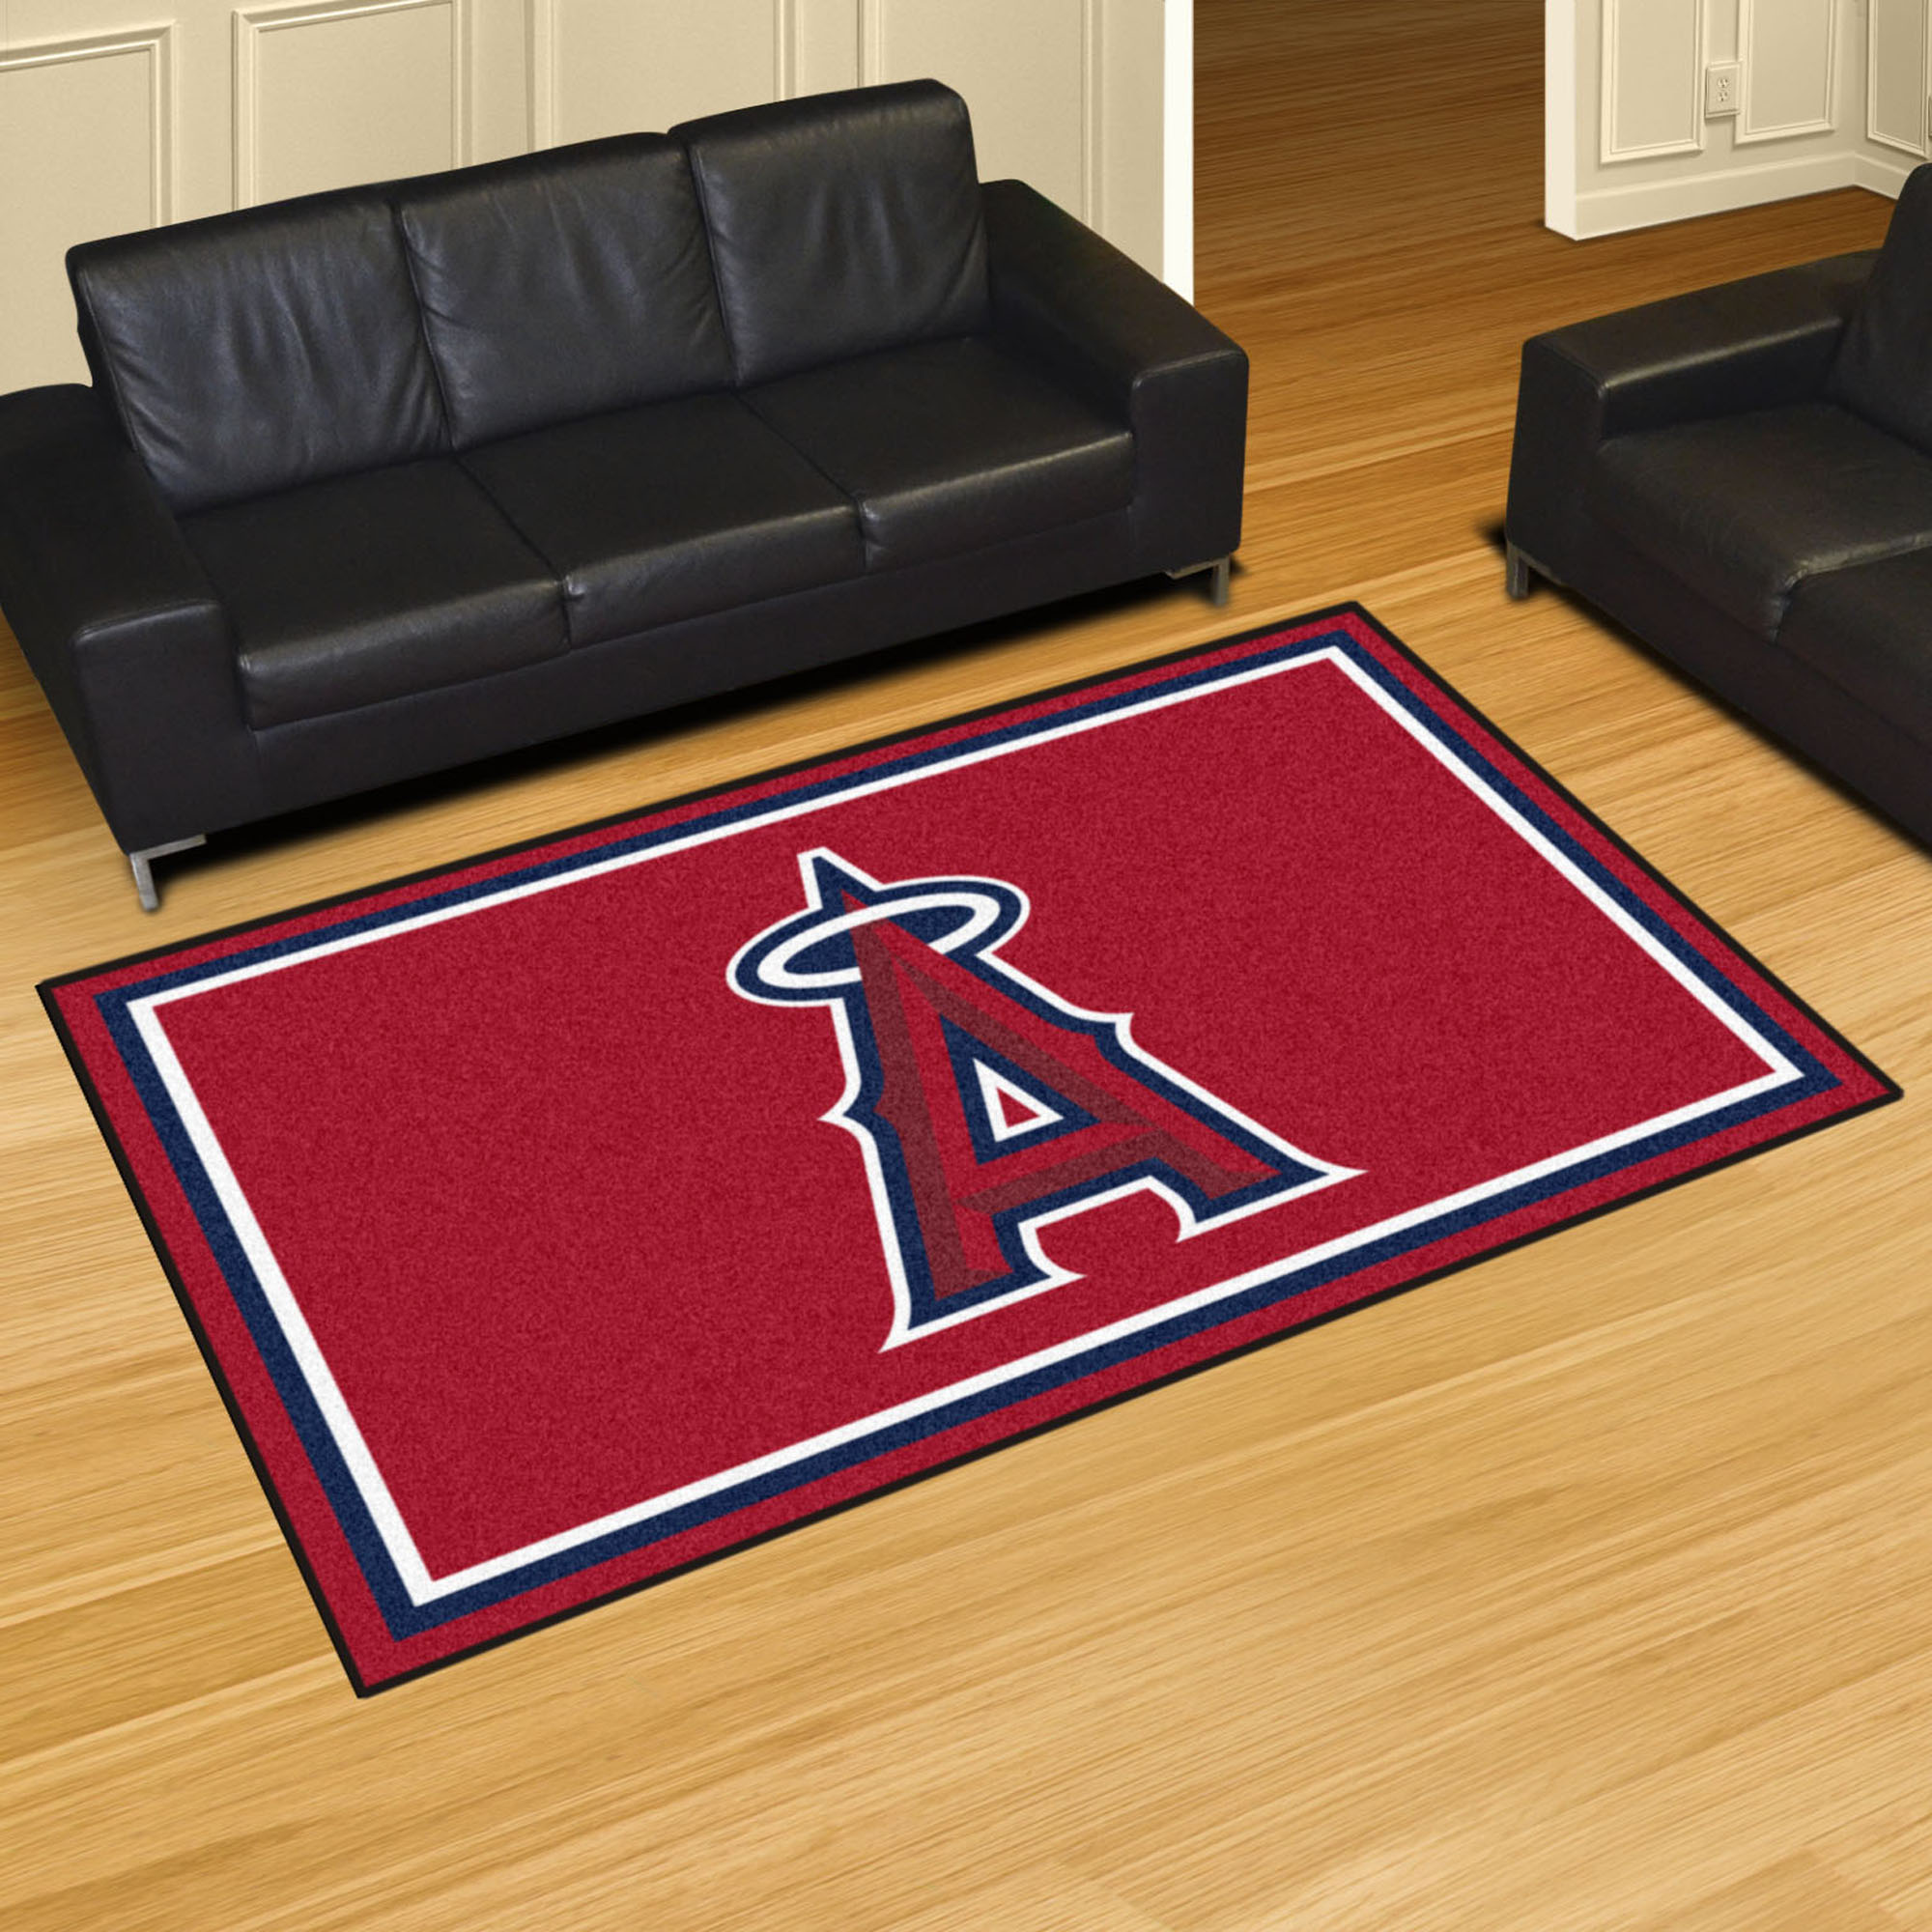 Los Angeles Angels 5x8 Area Rug